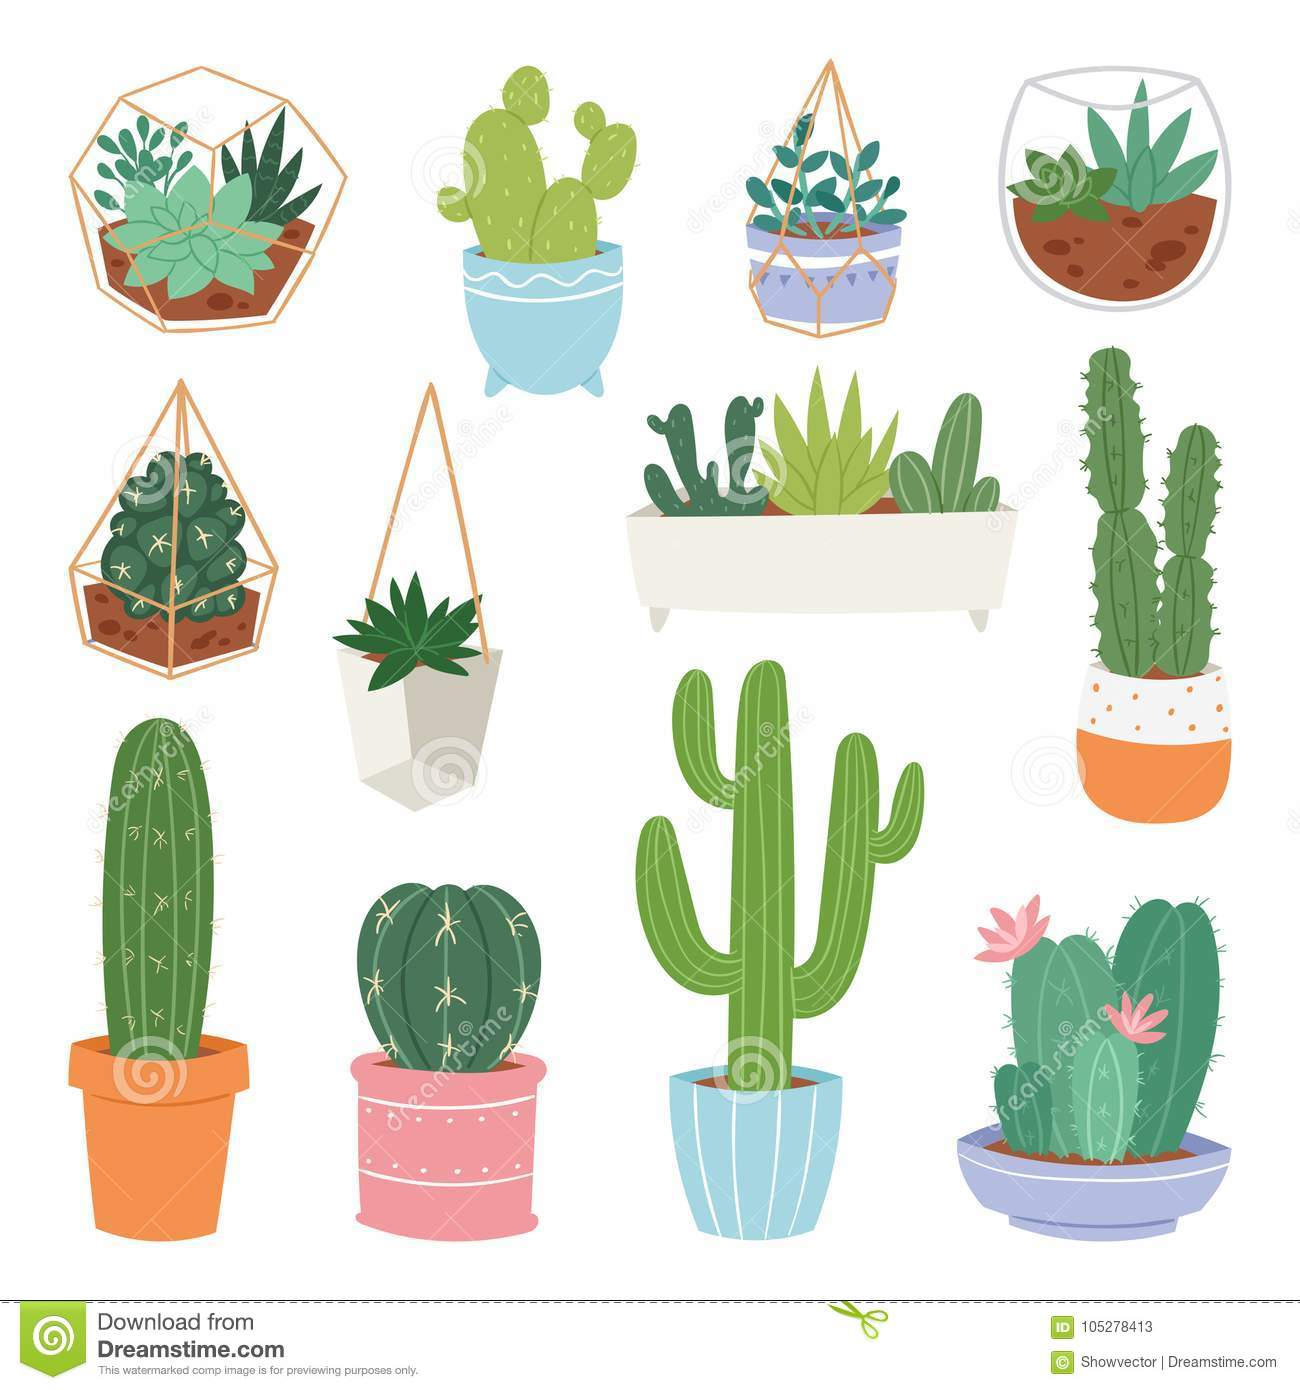 Cactus Vector Cartoon Botanical Cacti Potted Cute Cactaceous Succulent Plant Botany Illustration Isolated On White Stock Vector Illustration Of Cacti Cactus 105278413